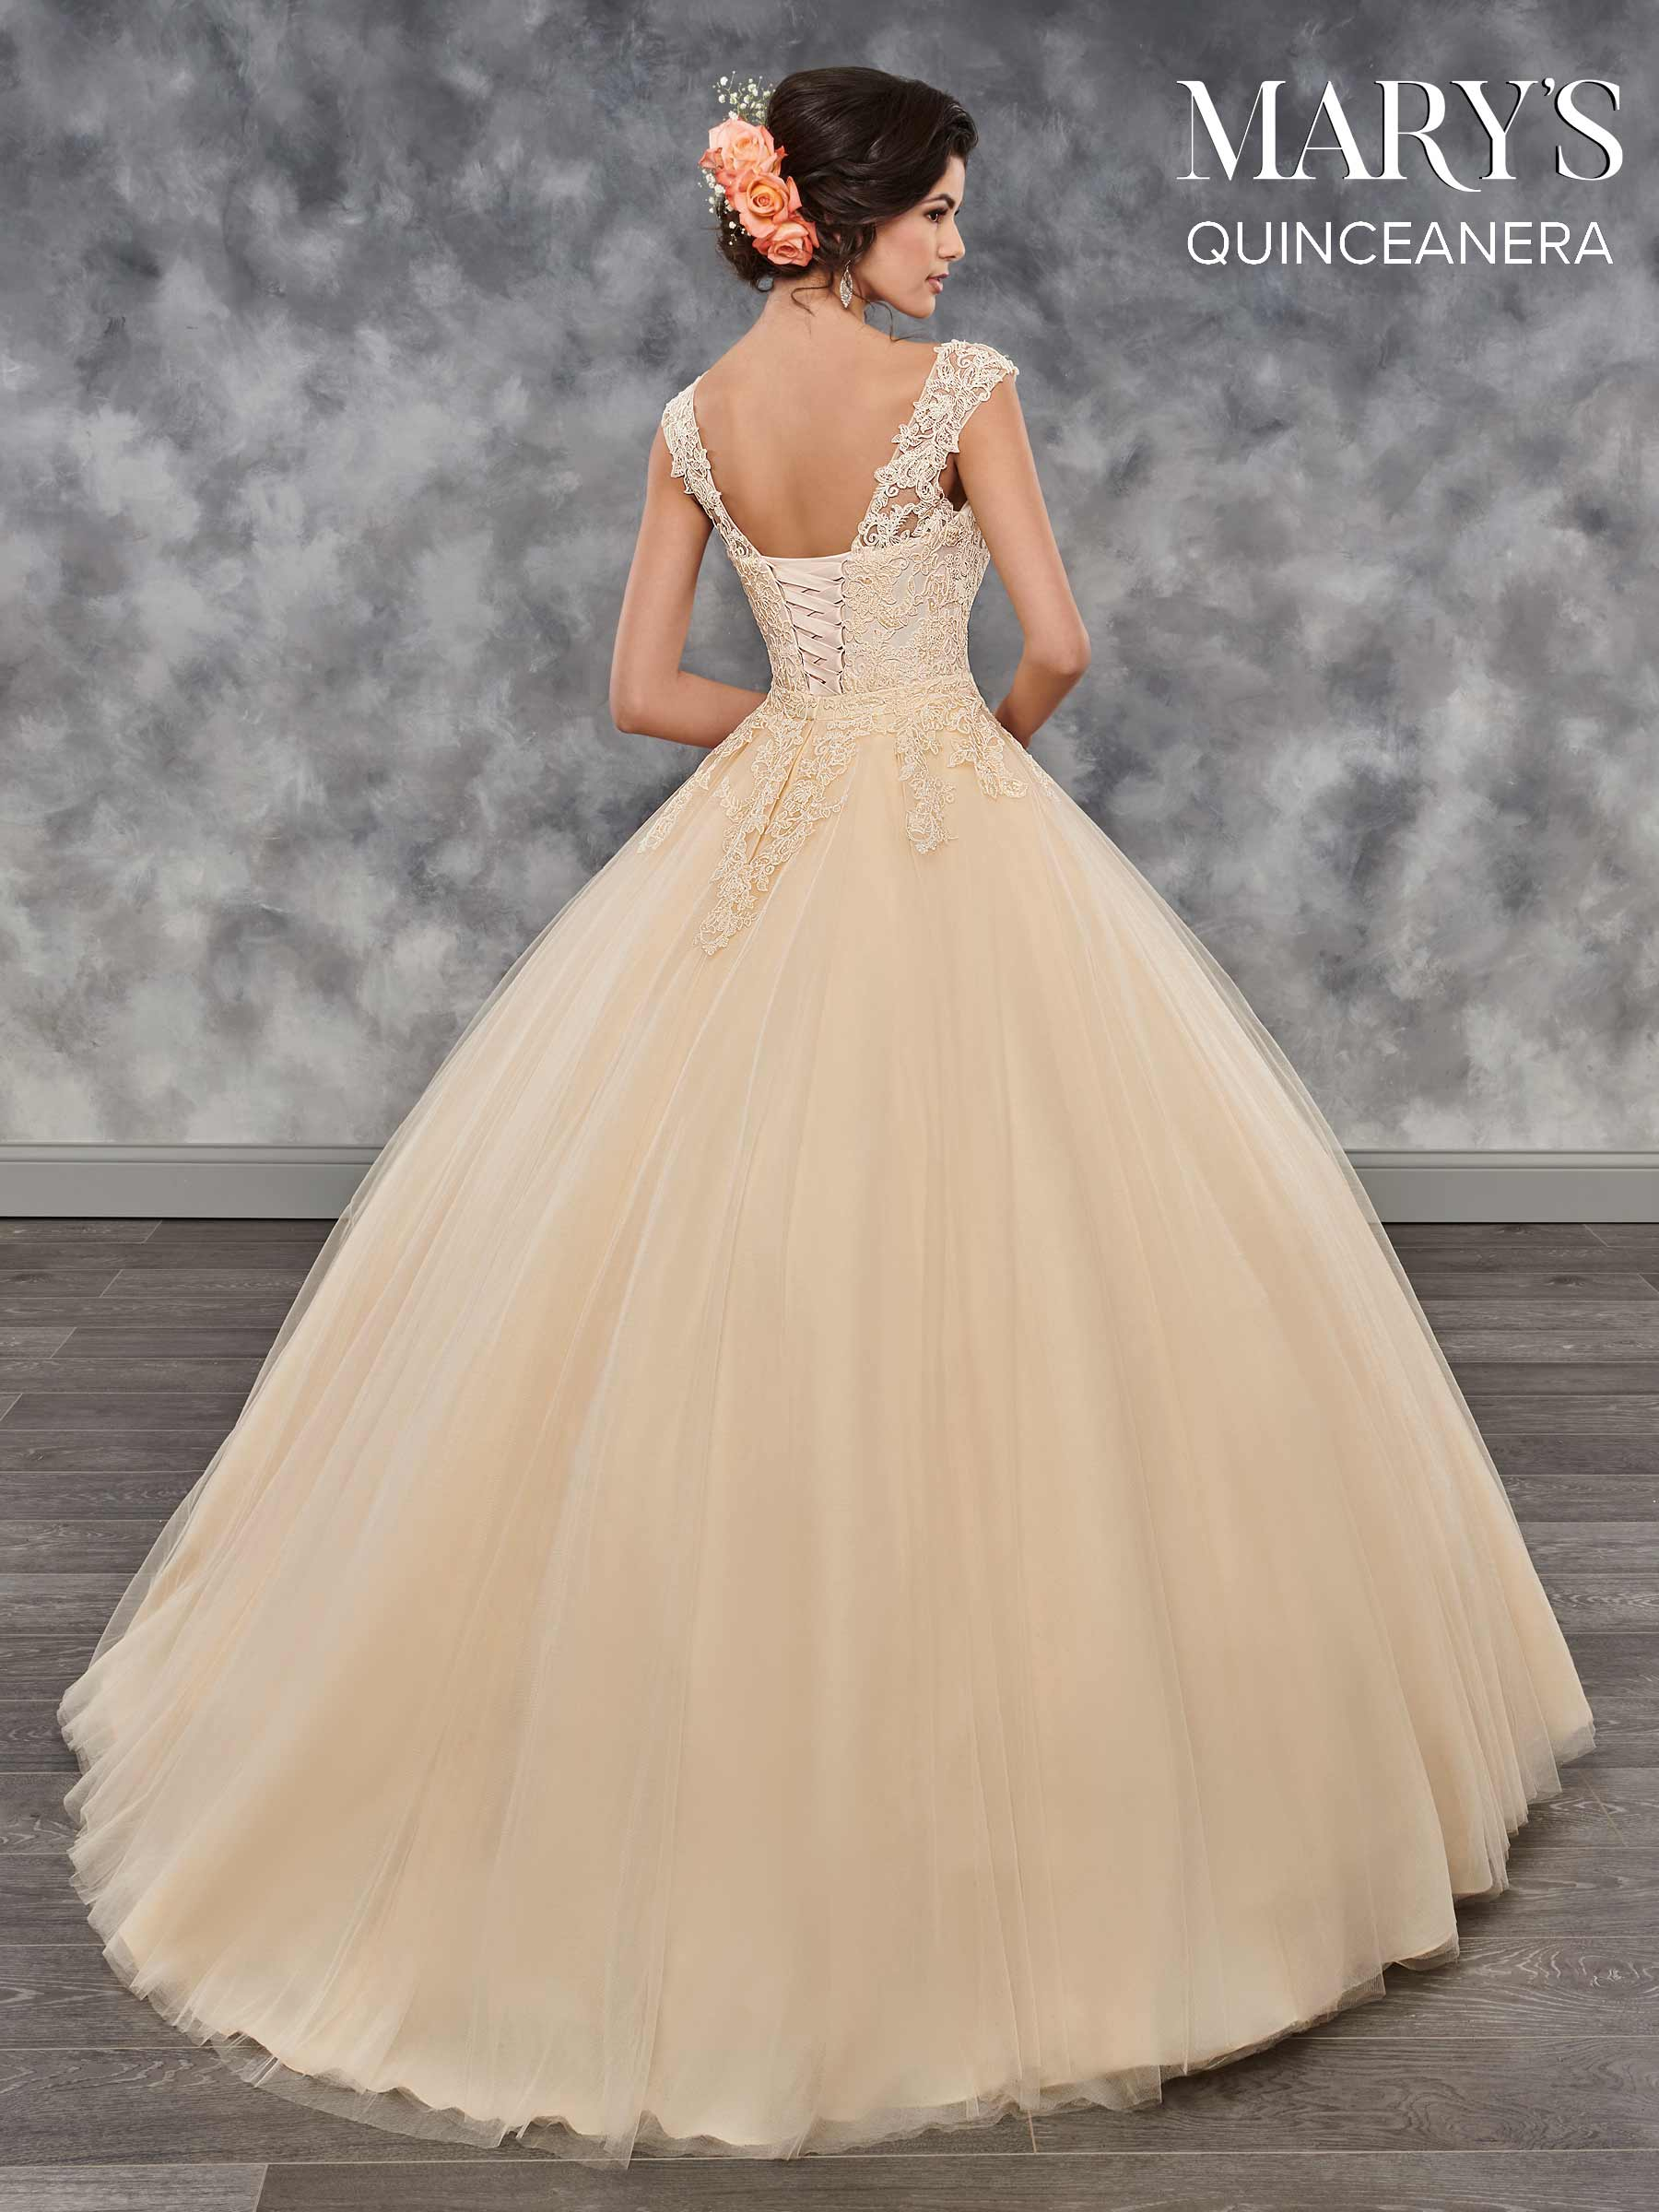 Marys Quinceanera Dresses | Mary's Quinceanera | Style - MQ1018